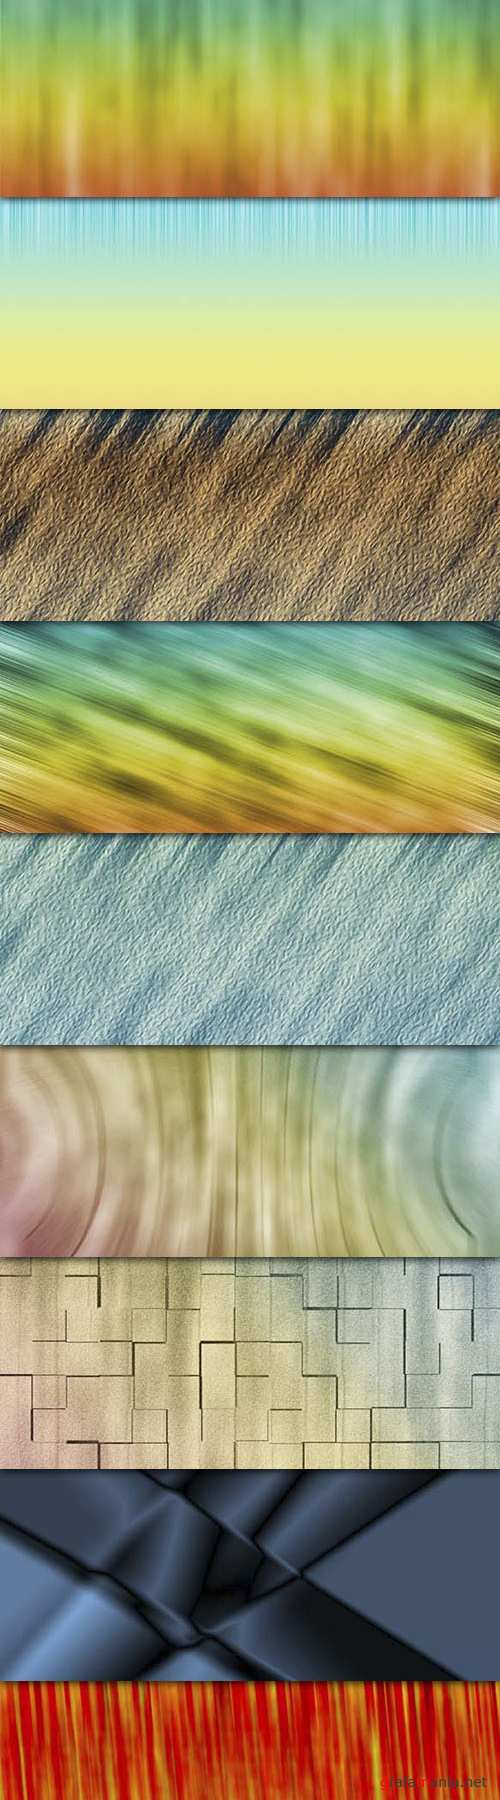 11 Awesome Abstract Backgrounds